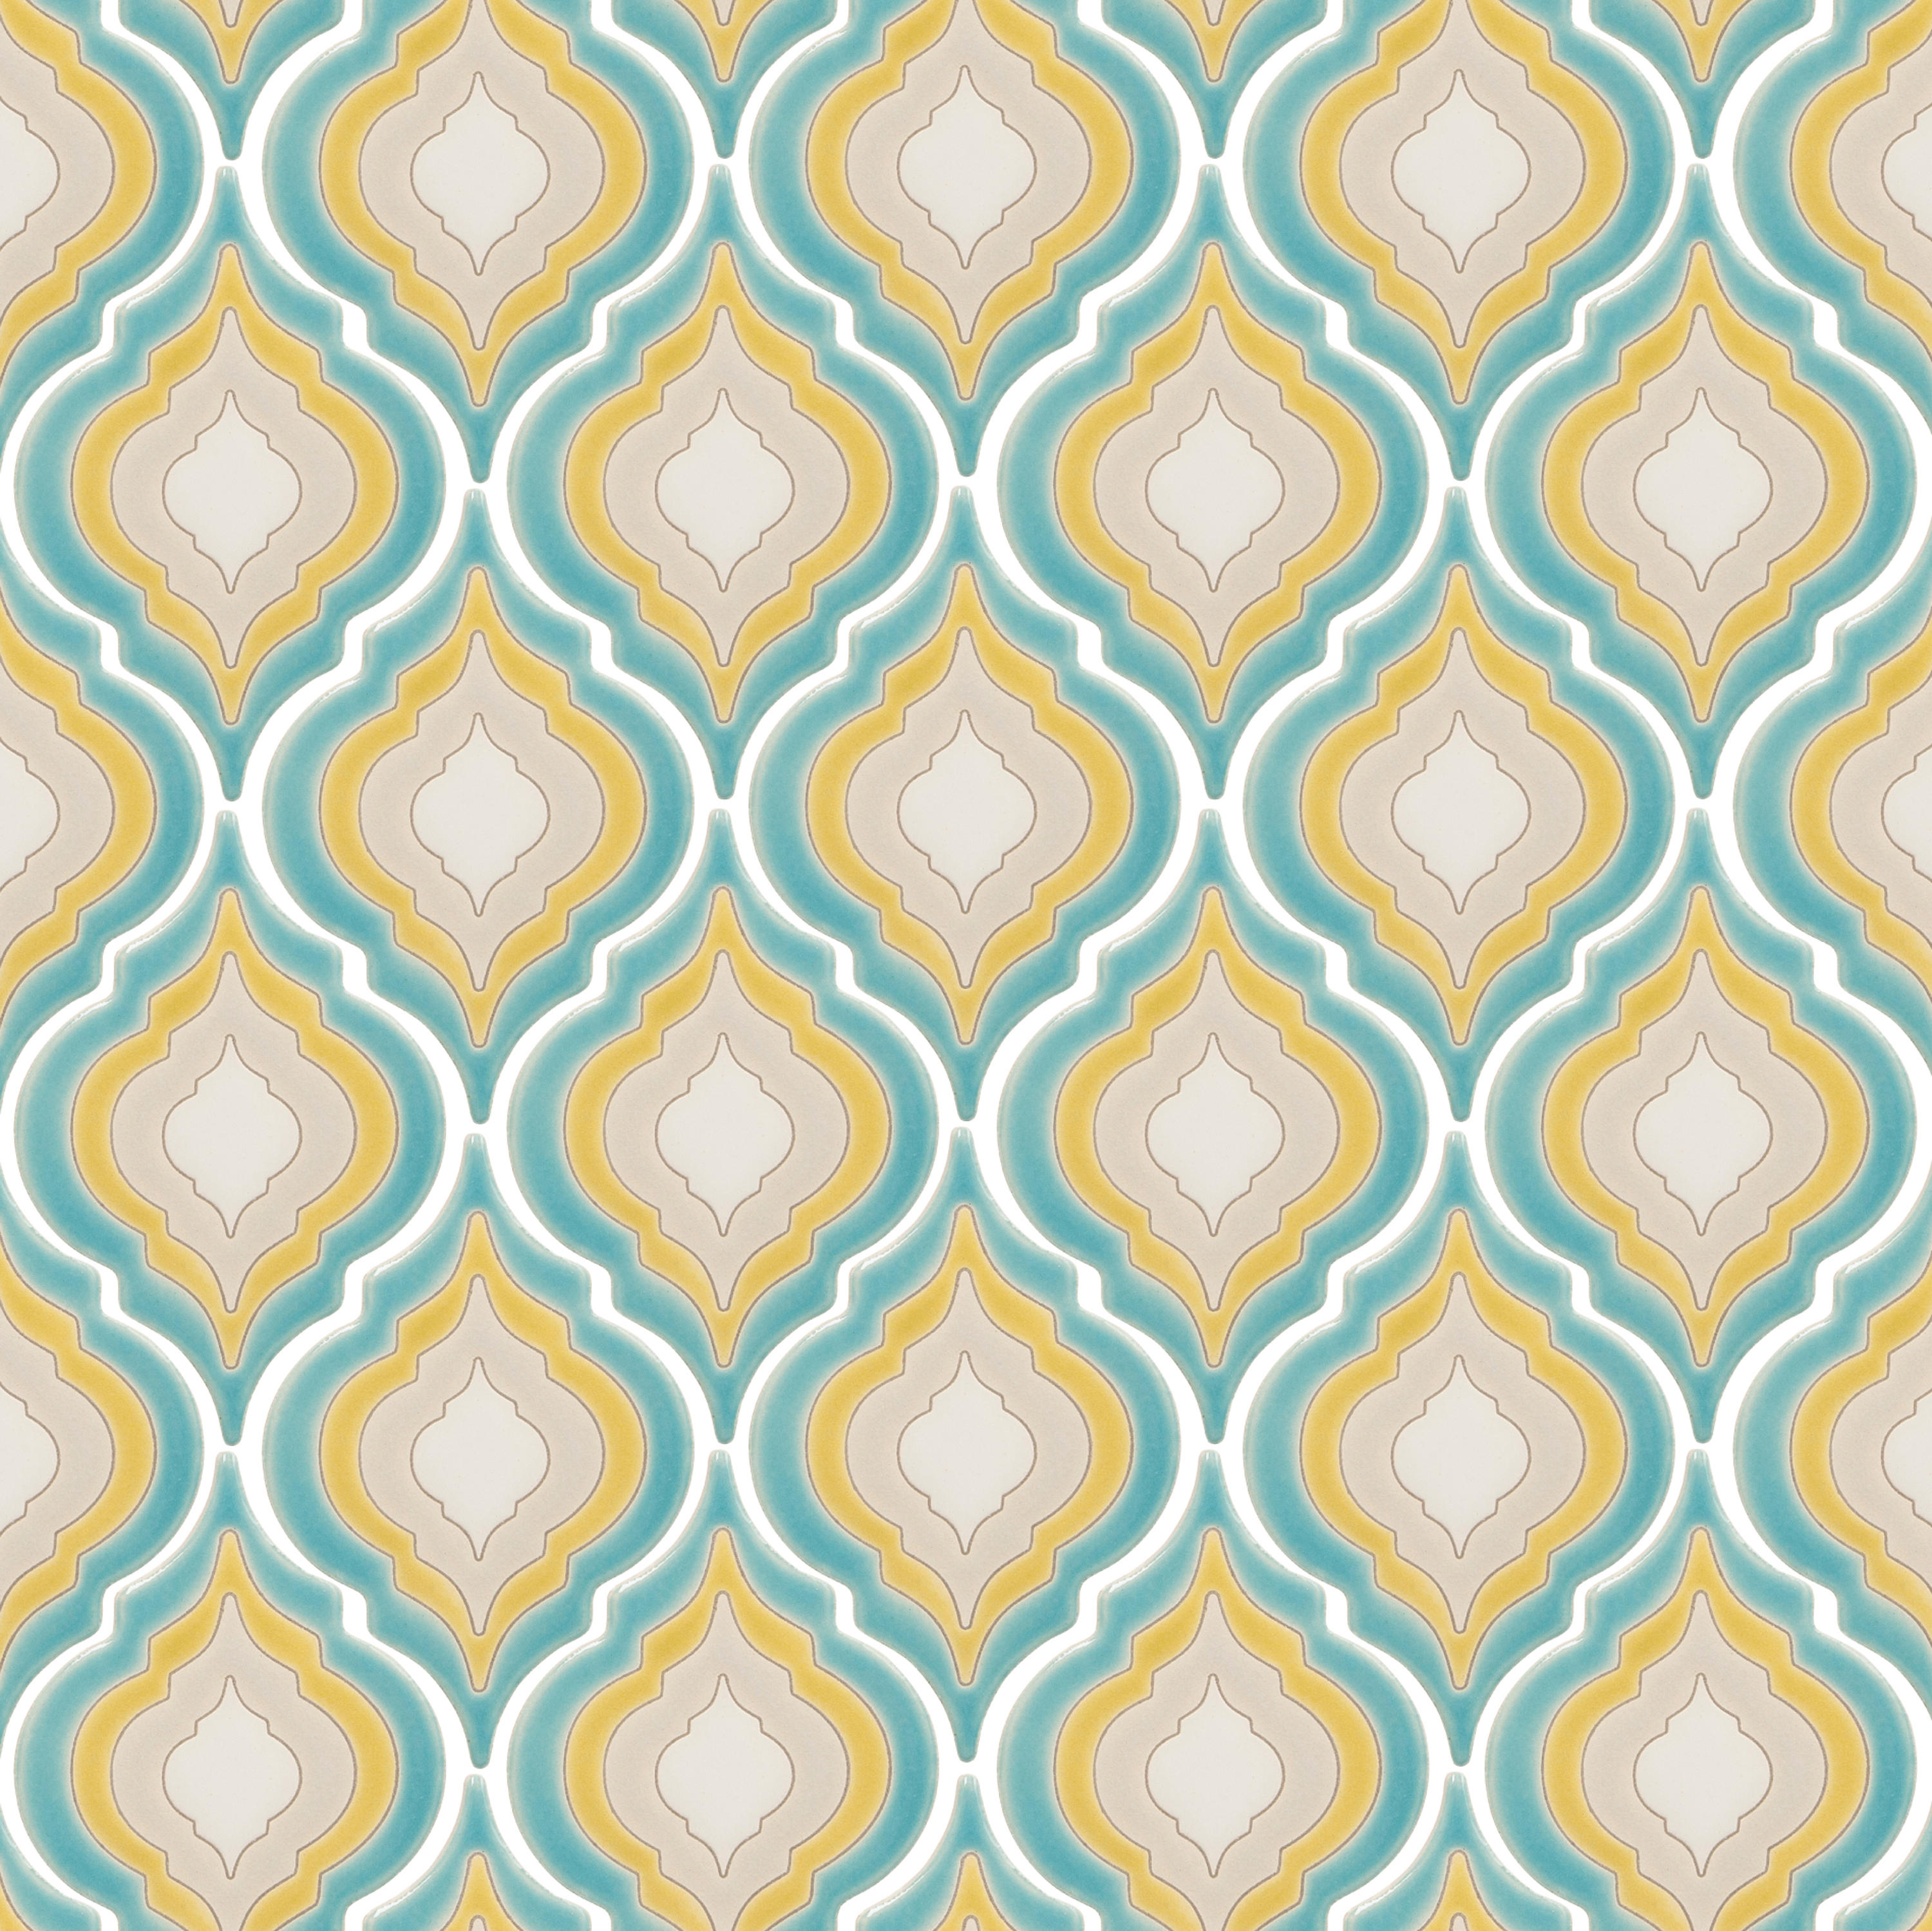 Genie amy ceramic tiles from tango tile architonic genie amy by tango tile ceramic tiles dailygadgetfo Images